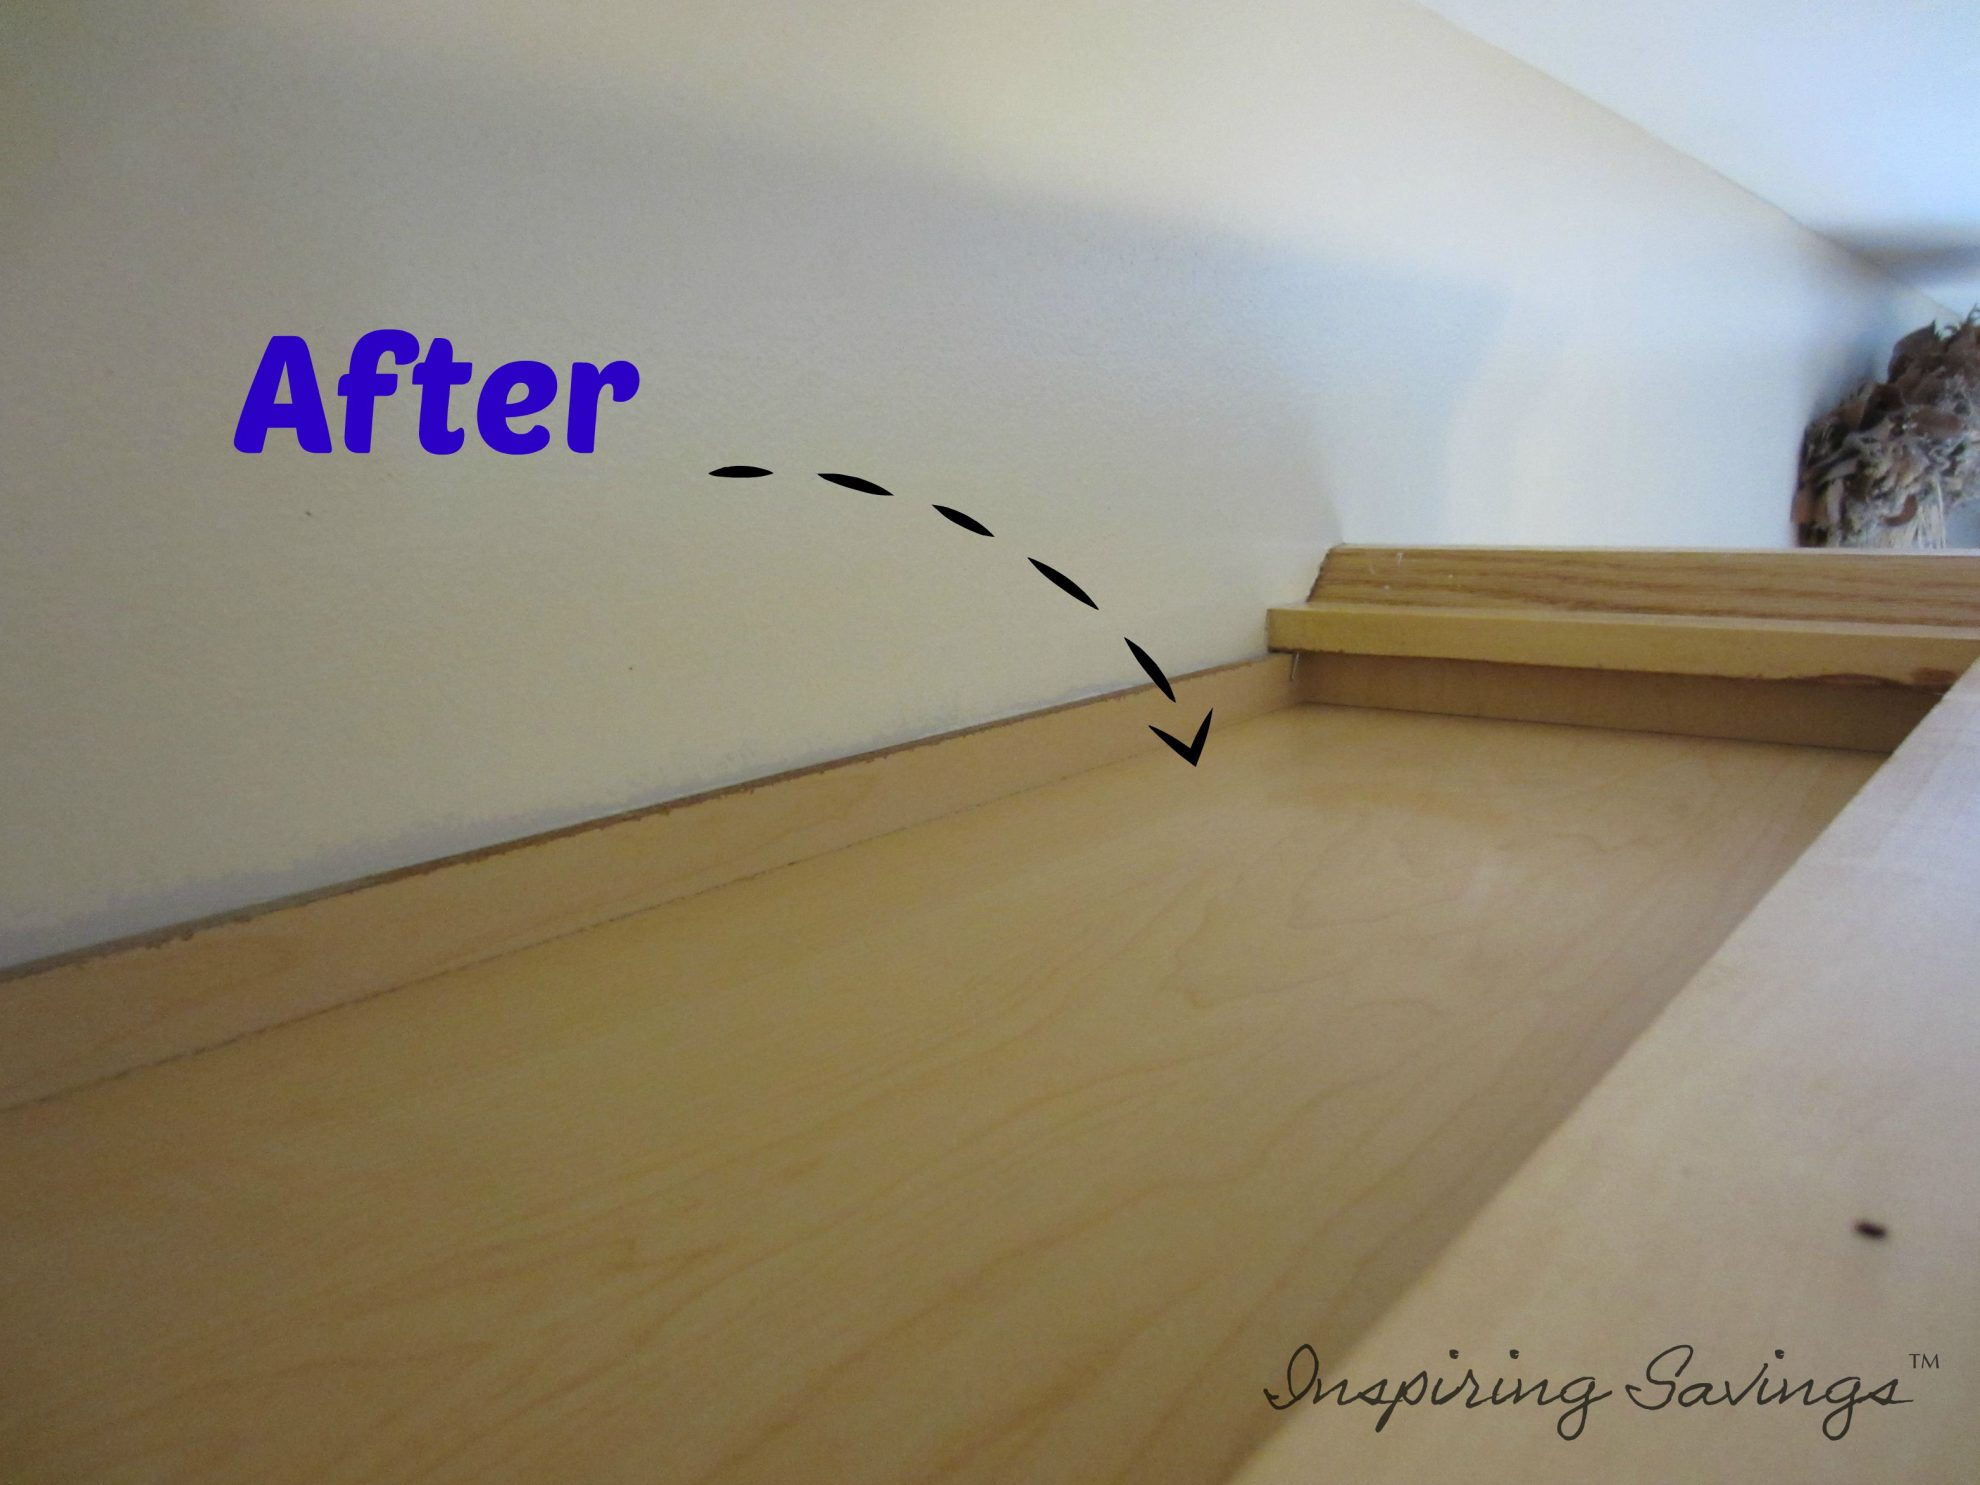 Tops of kitchen cabinets after Using An All Natural Kitchen Degreaser